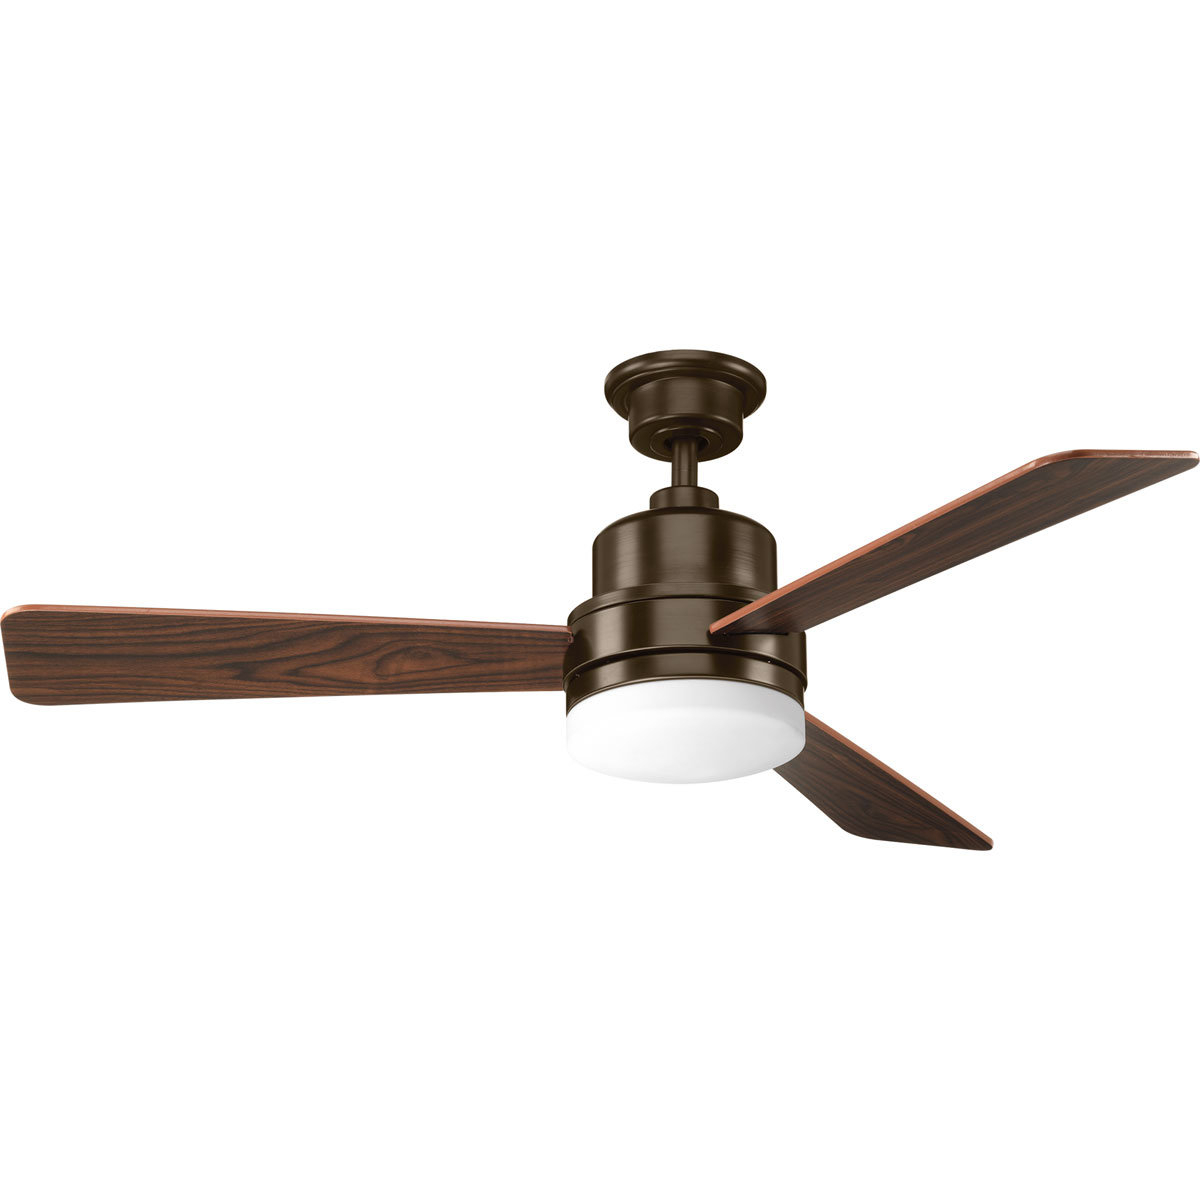 "52"" Rathburn 3 Blade Ceiling Fan, Light Kit Included Intended For Fashionable Dennis 3 Blade Ceiling Fans (View 5 of 20)"